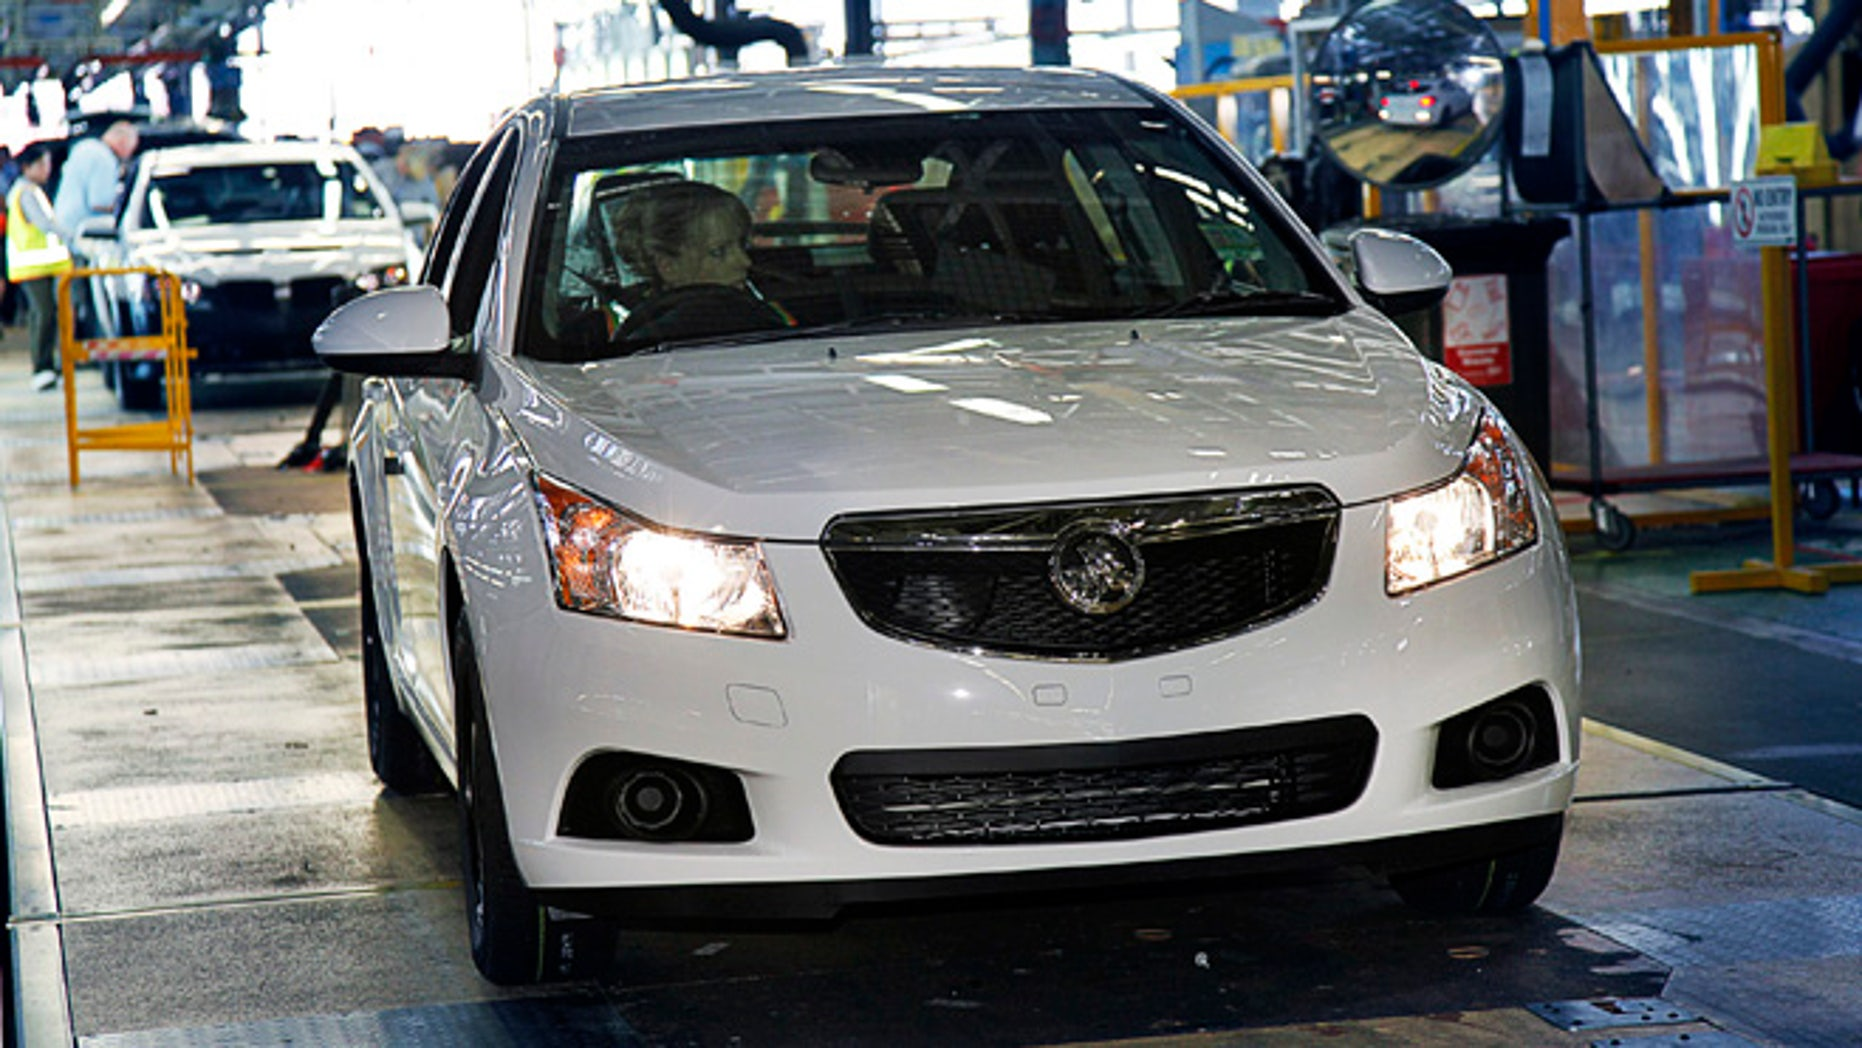 FILE - In this undated file photo released by General Motors Co., a Holden Cruze hatch is driven off the assembly line after it was manufactured at a plant in Australia. General Motors Co. said Wednesday, Dec. 11, 2013, it will stop making cars and engines in Australia by the end of 2017, with nearly 2,900 jobs to be lost, because of high production costs and competition. GM's Australian subsidiary Holden once dominated Australian auto sales, but lost market share to imported cars. (AP Photo/General Motors, File)